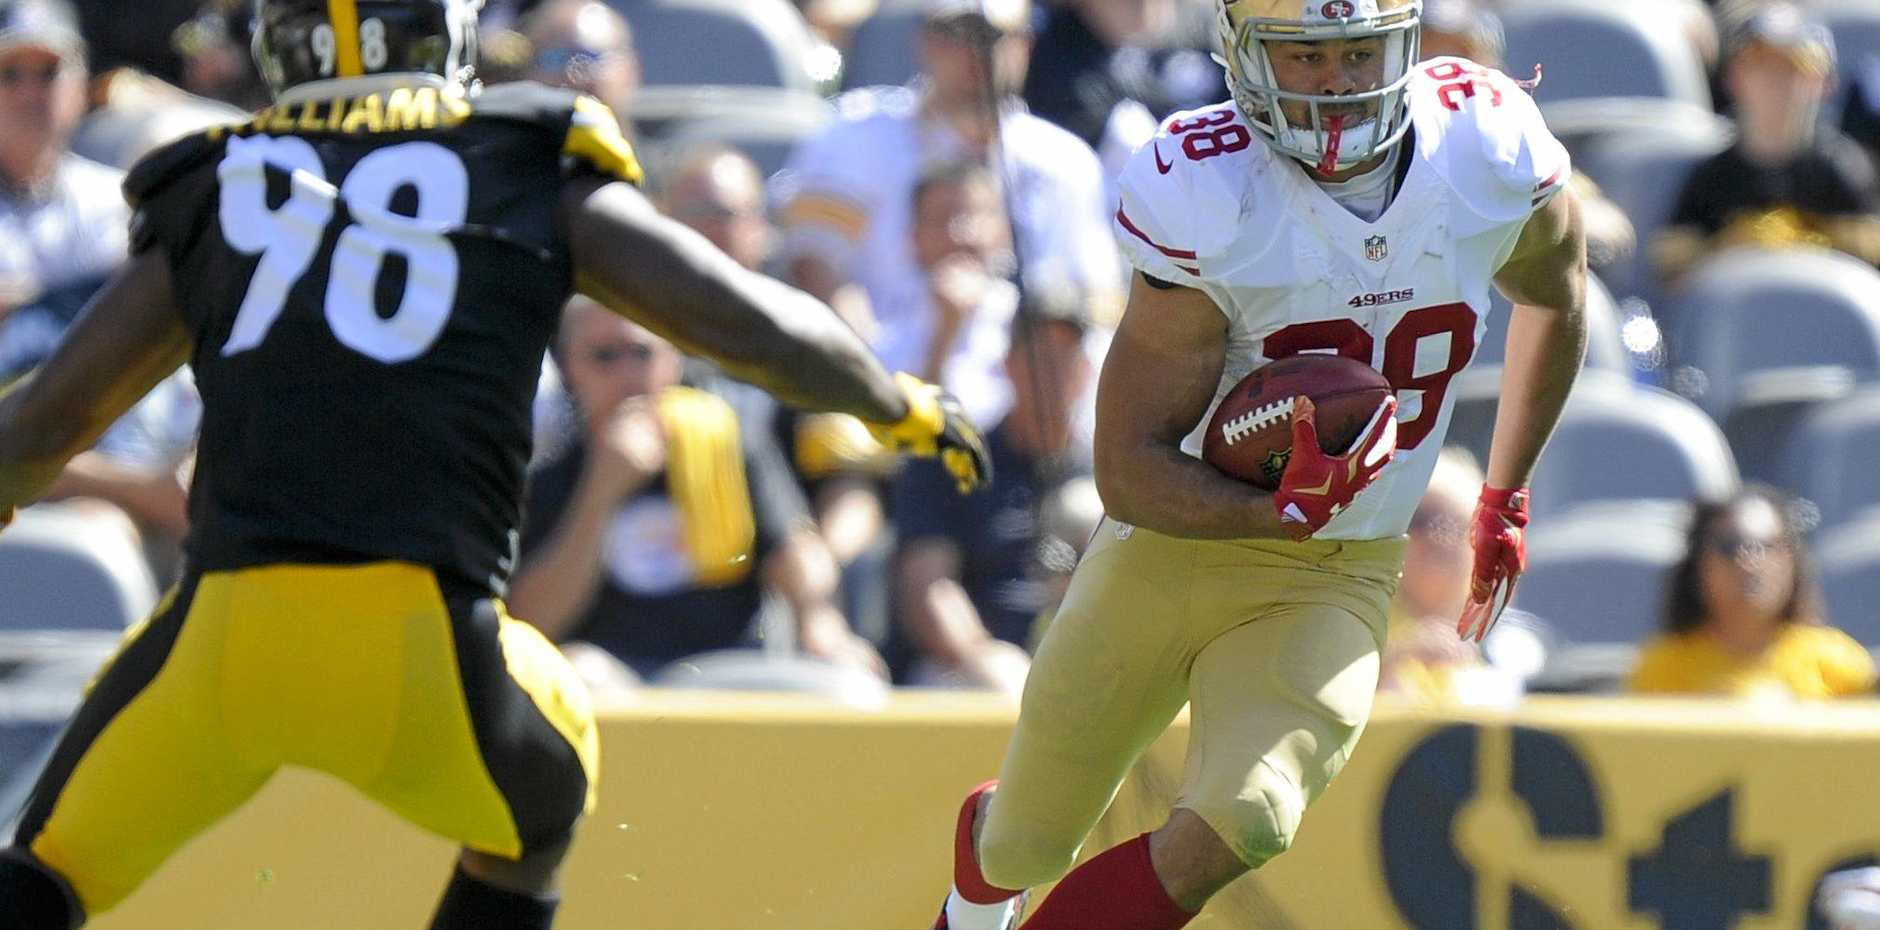 Happier times .... Jarryd Hayne in action for the San Francisco 49ers